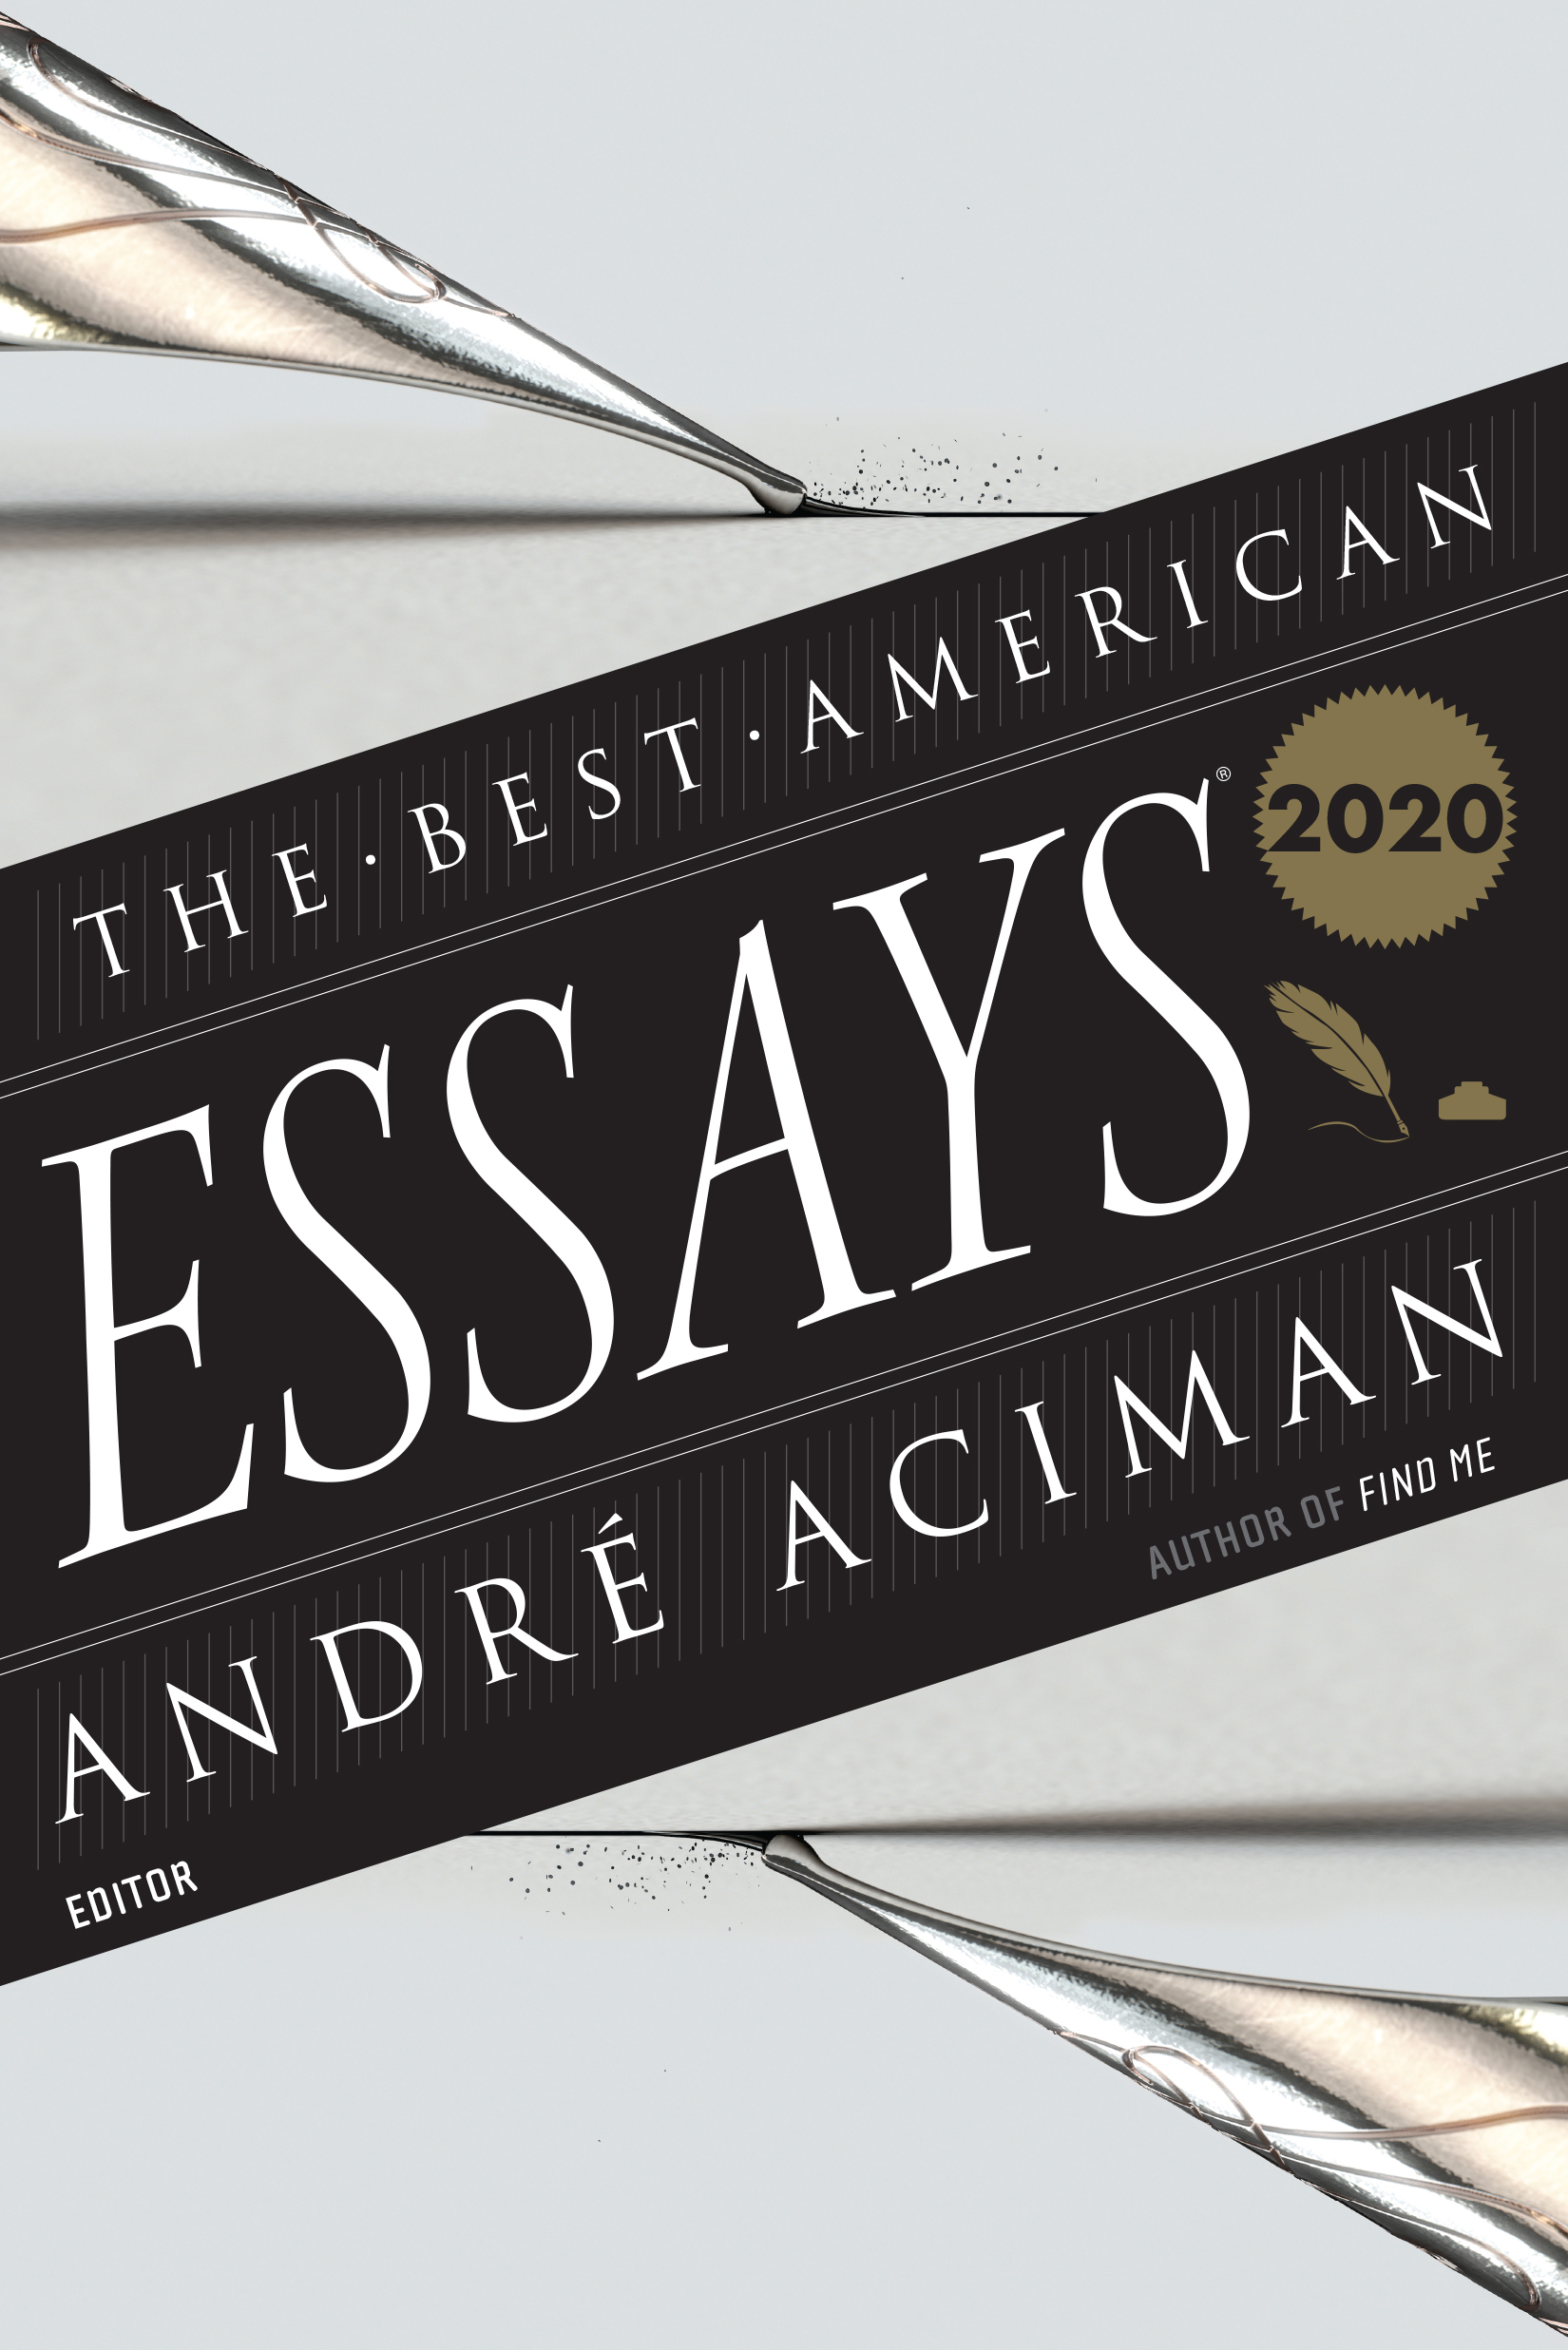 The Best American Essays 2020 / Edited by Andre Aciman